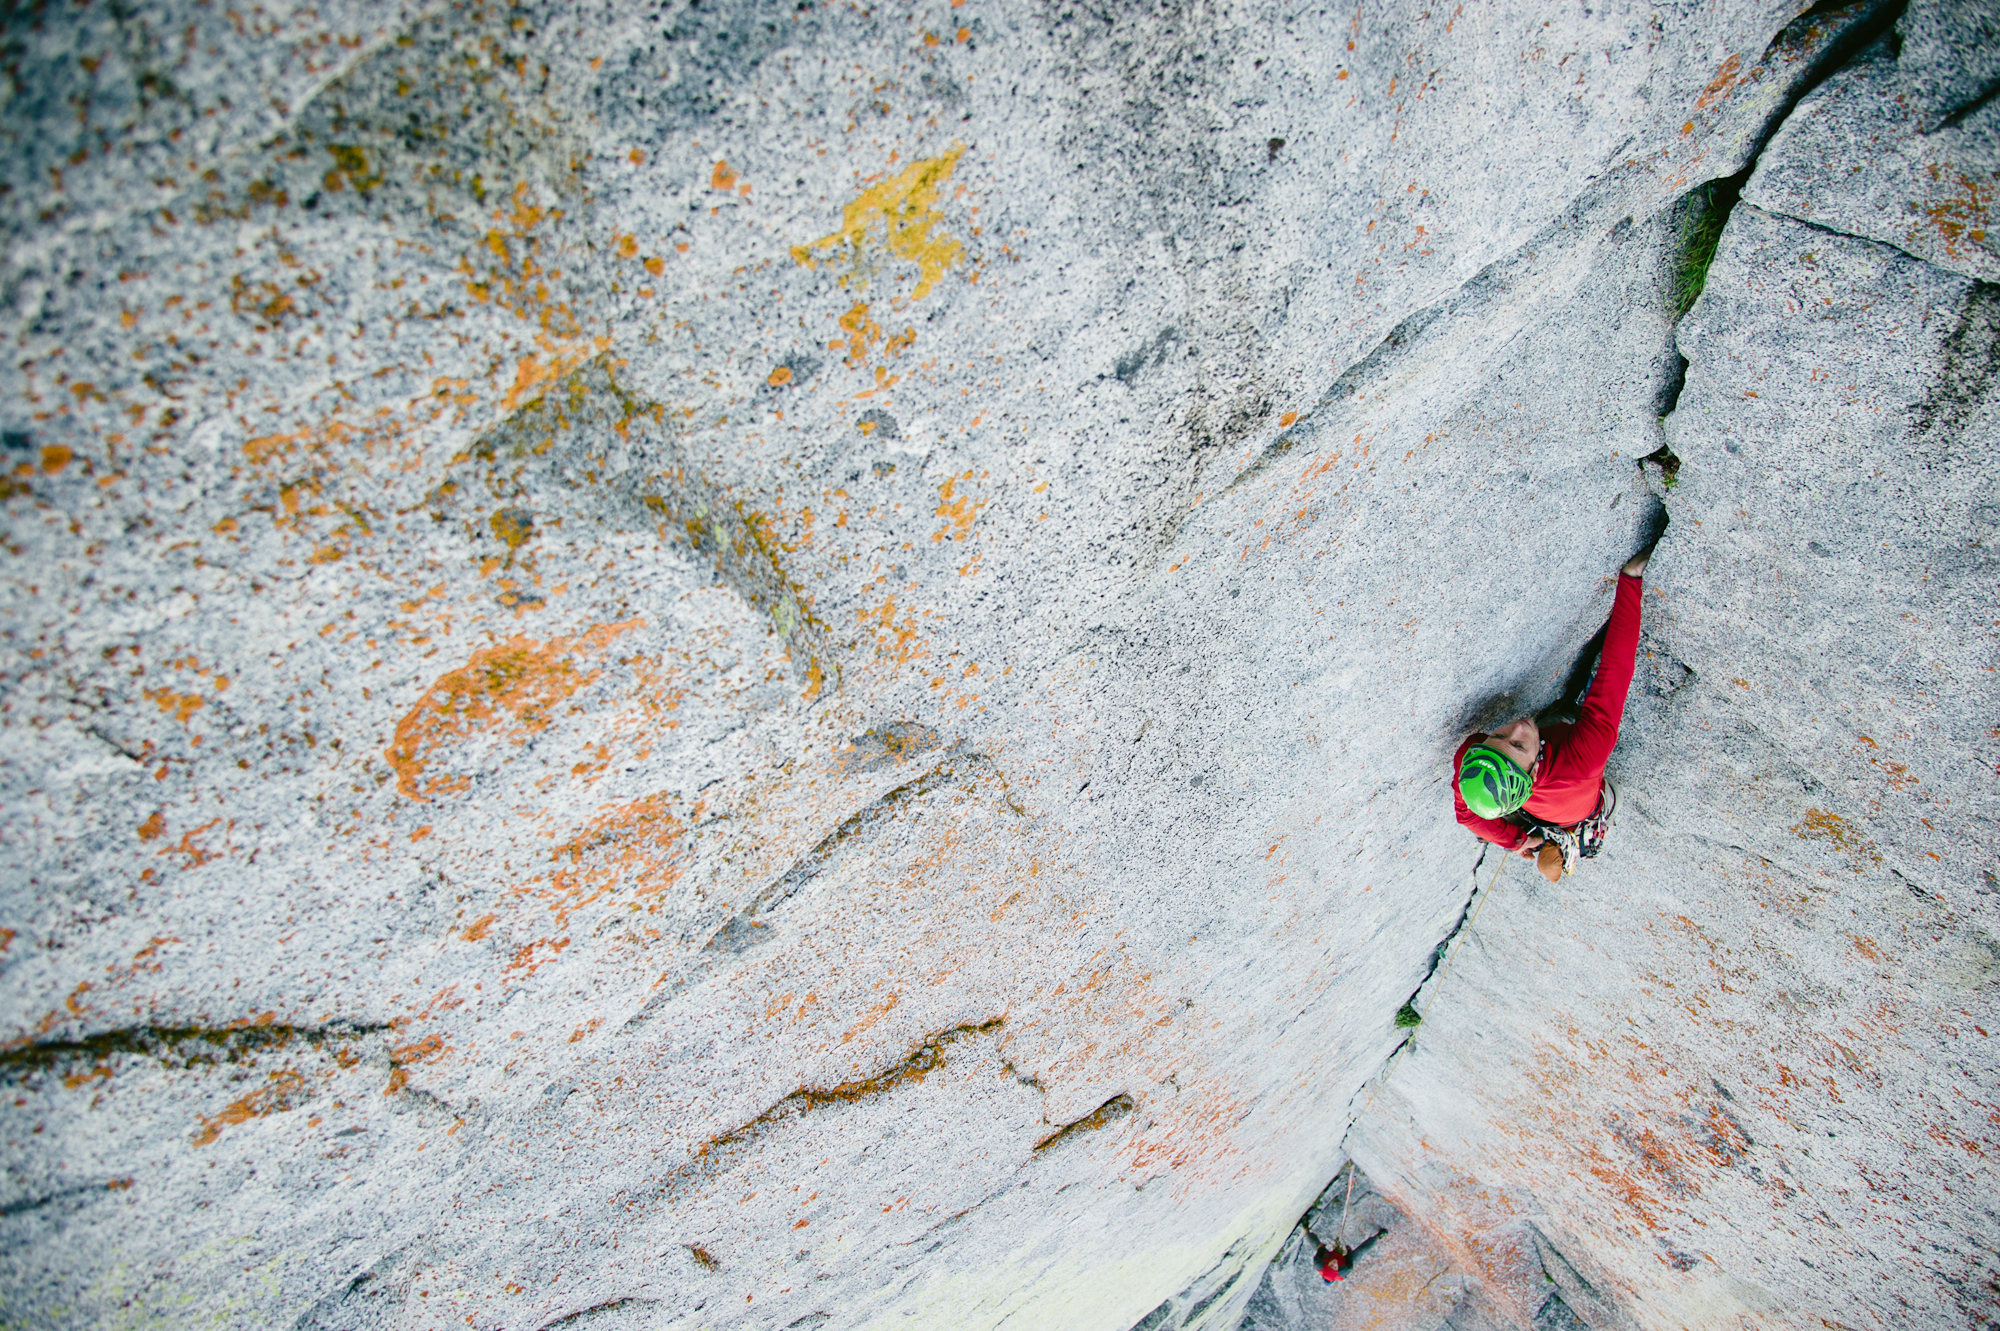 Blake Herrington on Colchuck Balanced Rock by Garrett Grove.